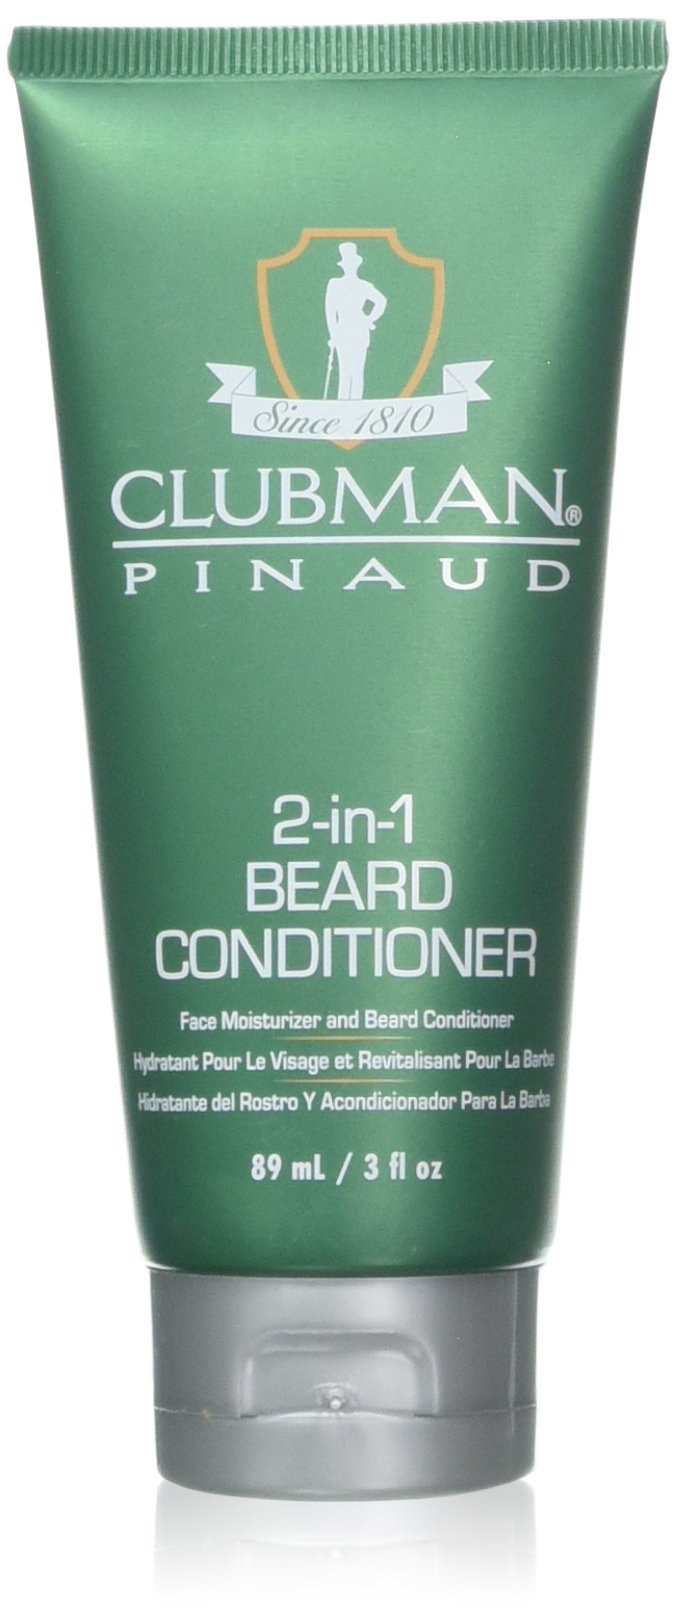 Clubman Beard 2-In-1 Conditioner 3 Ounce Tube (88ml) (2